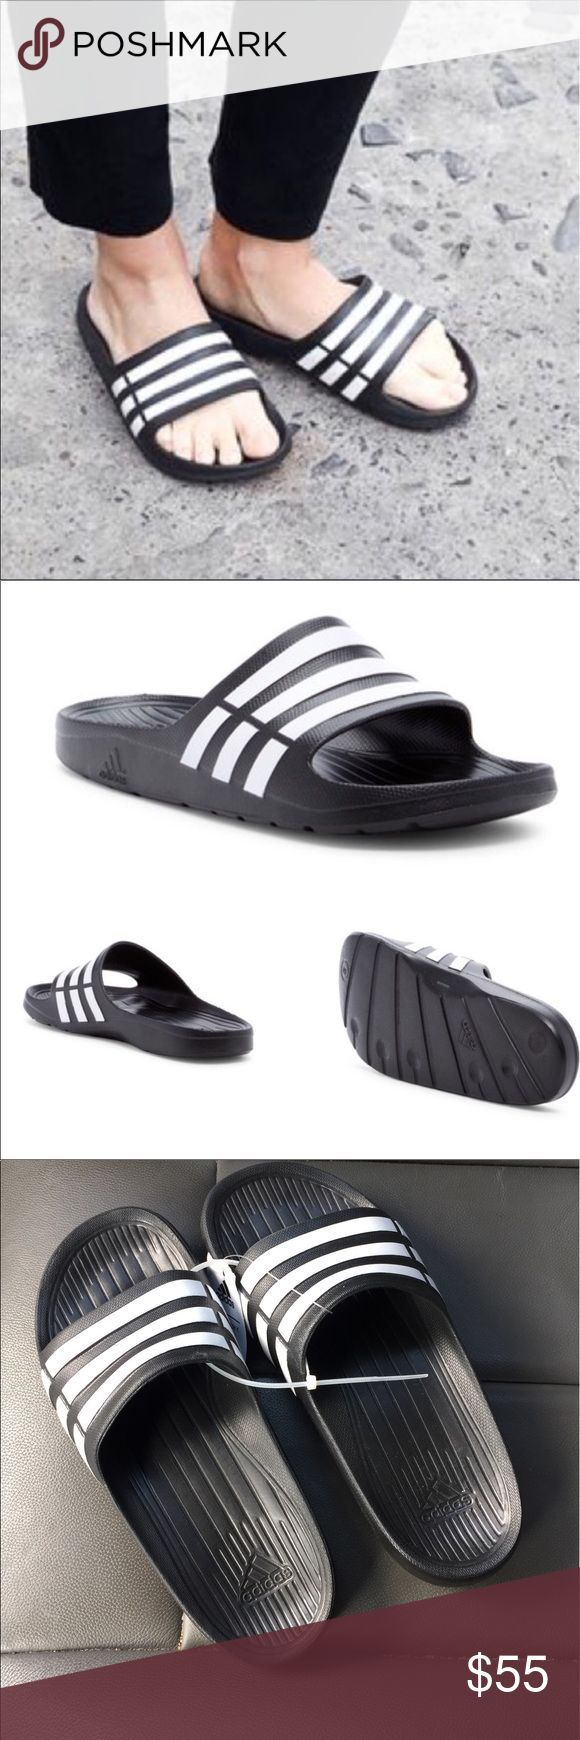 ebd7e7bf05d4 Buy adidas slides kids 2015   OFF35% Discounted